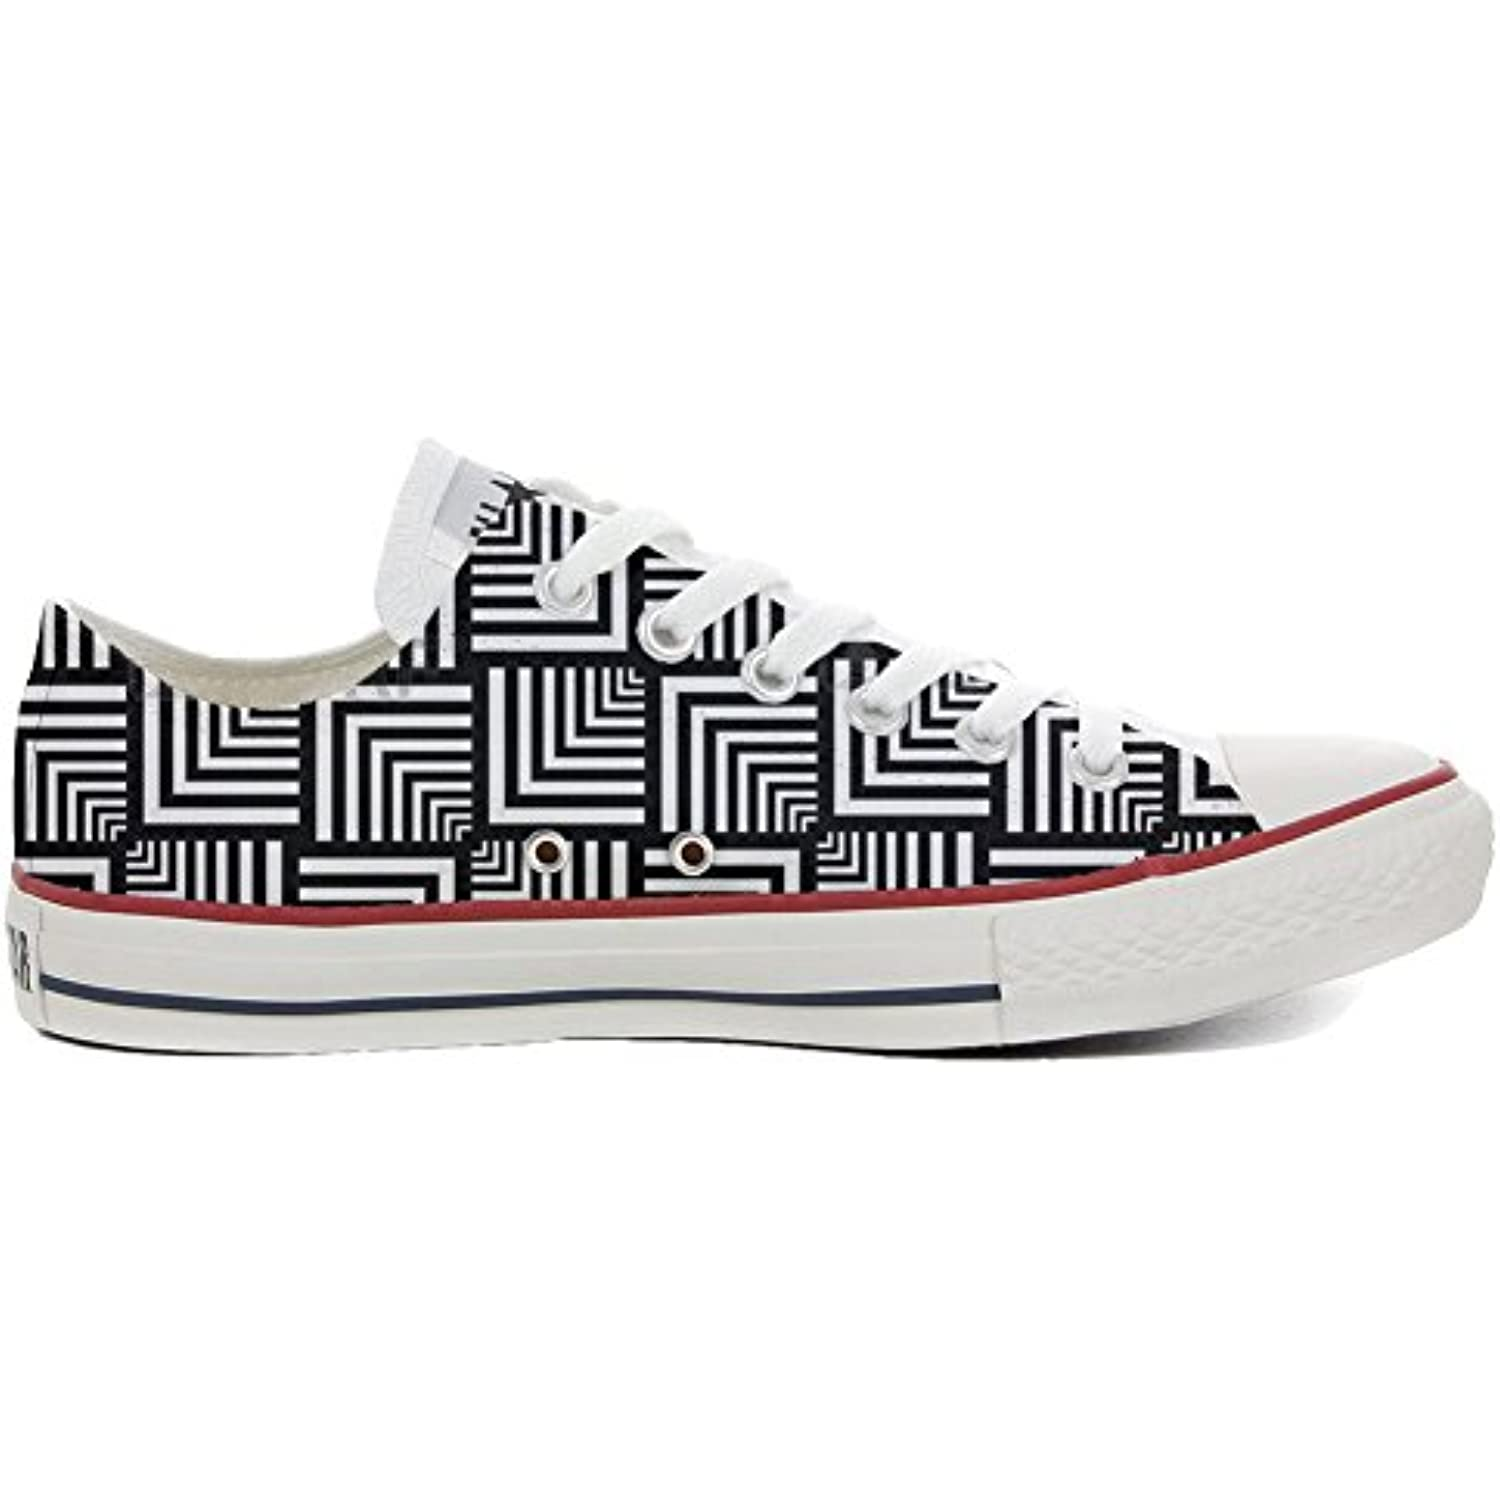 online store 83867 55509 mys Converse Customized Customized Customized Unisex Slim, Chaussures  Coutume Produit Artisanal Geometric B06X6KPBS7 - cd36b7